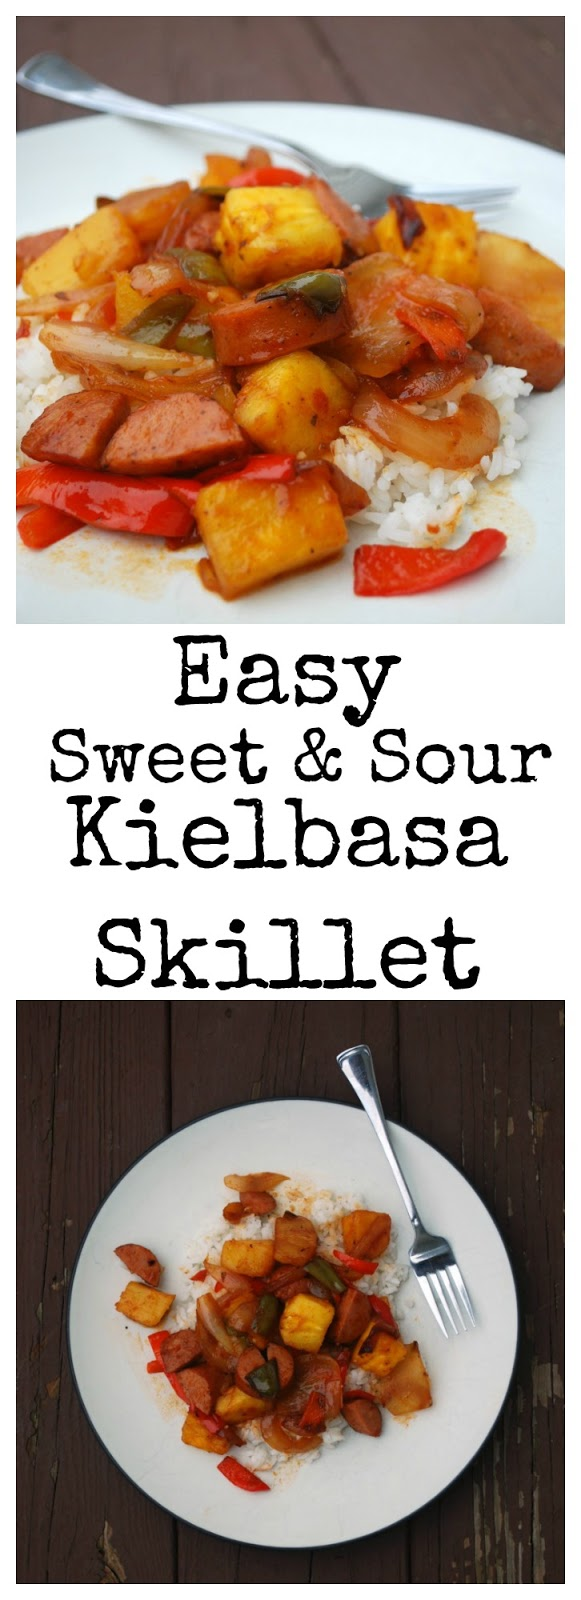 This sweet and sour kielbasa skillet meal only takes a minimal amount of prep work, 30 minutes (if that!) to make, and its filled with real ingredients! 